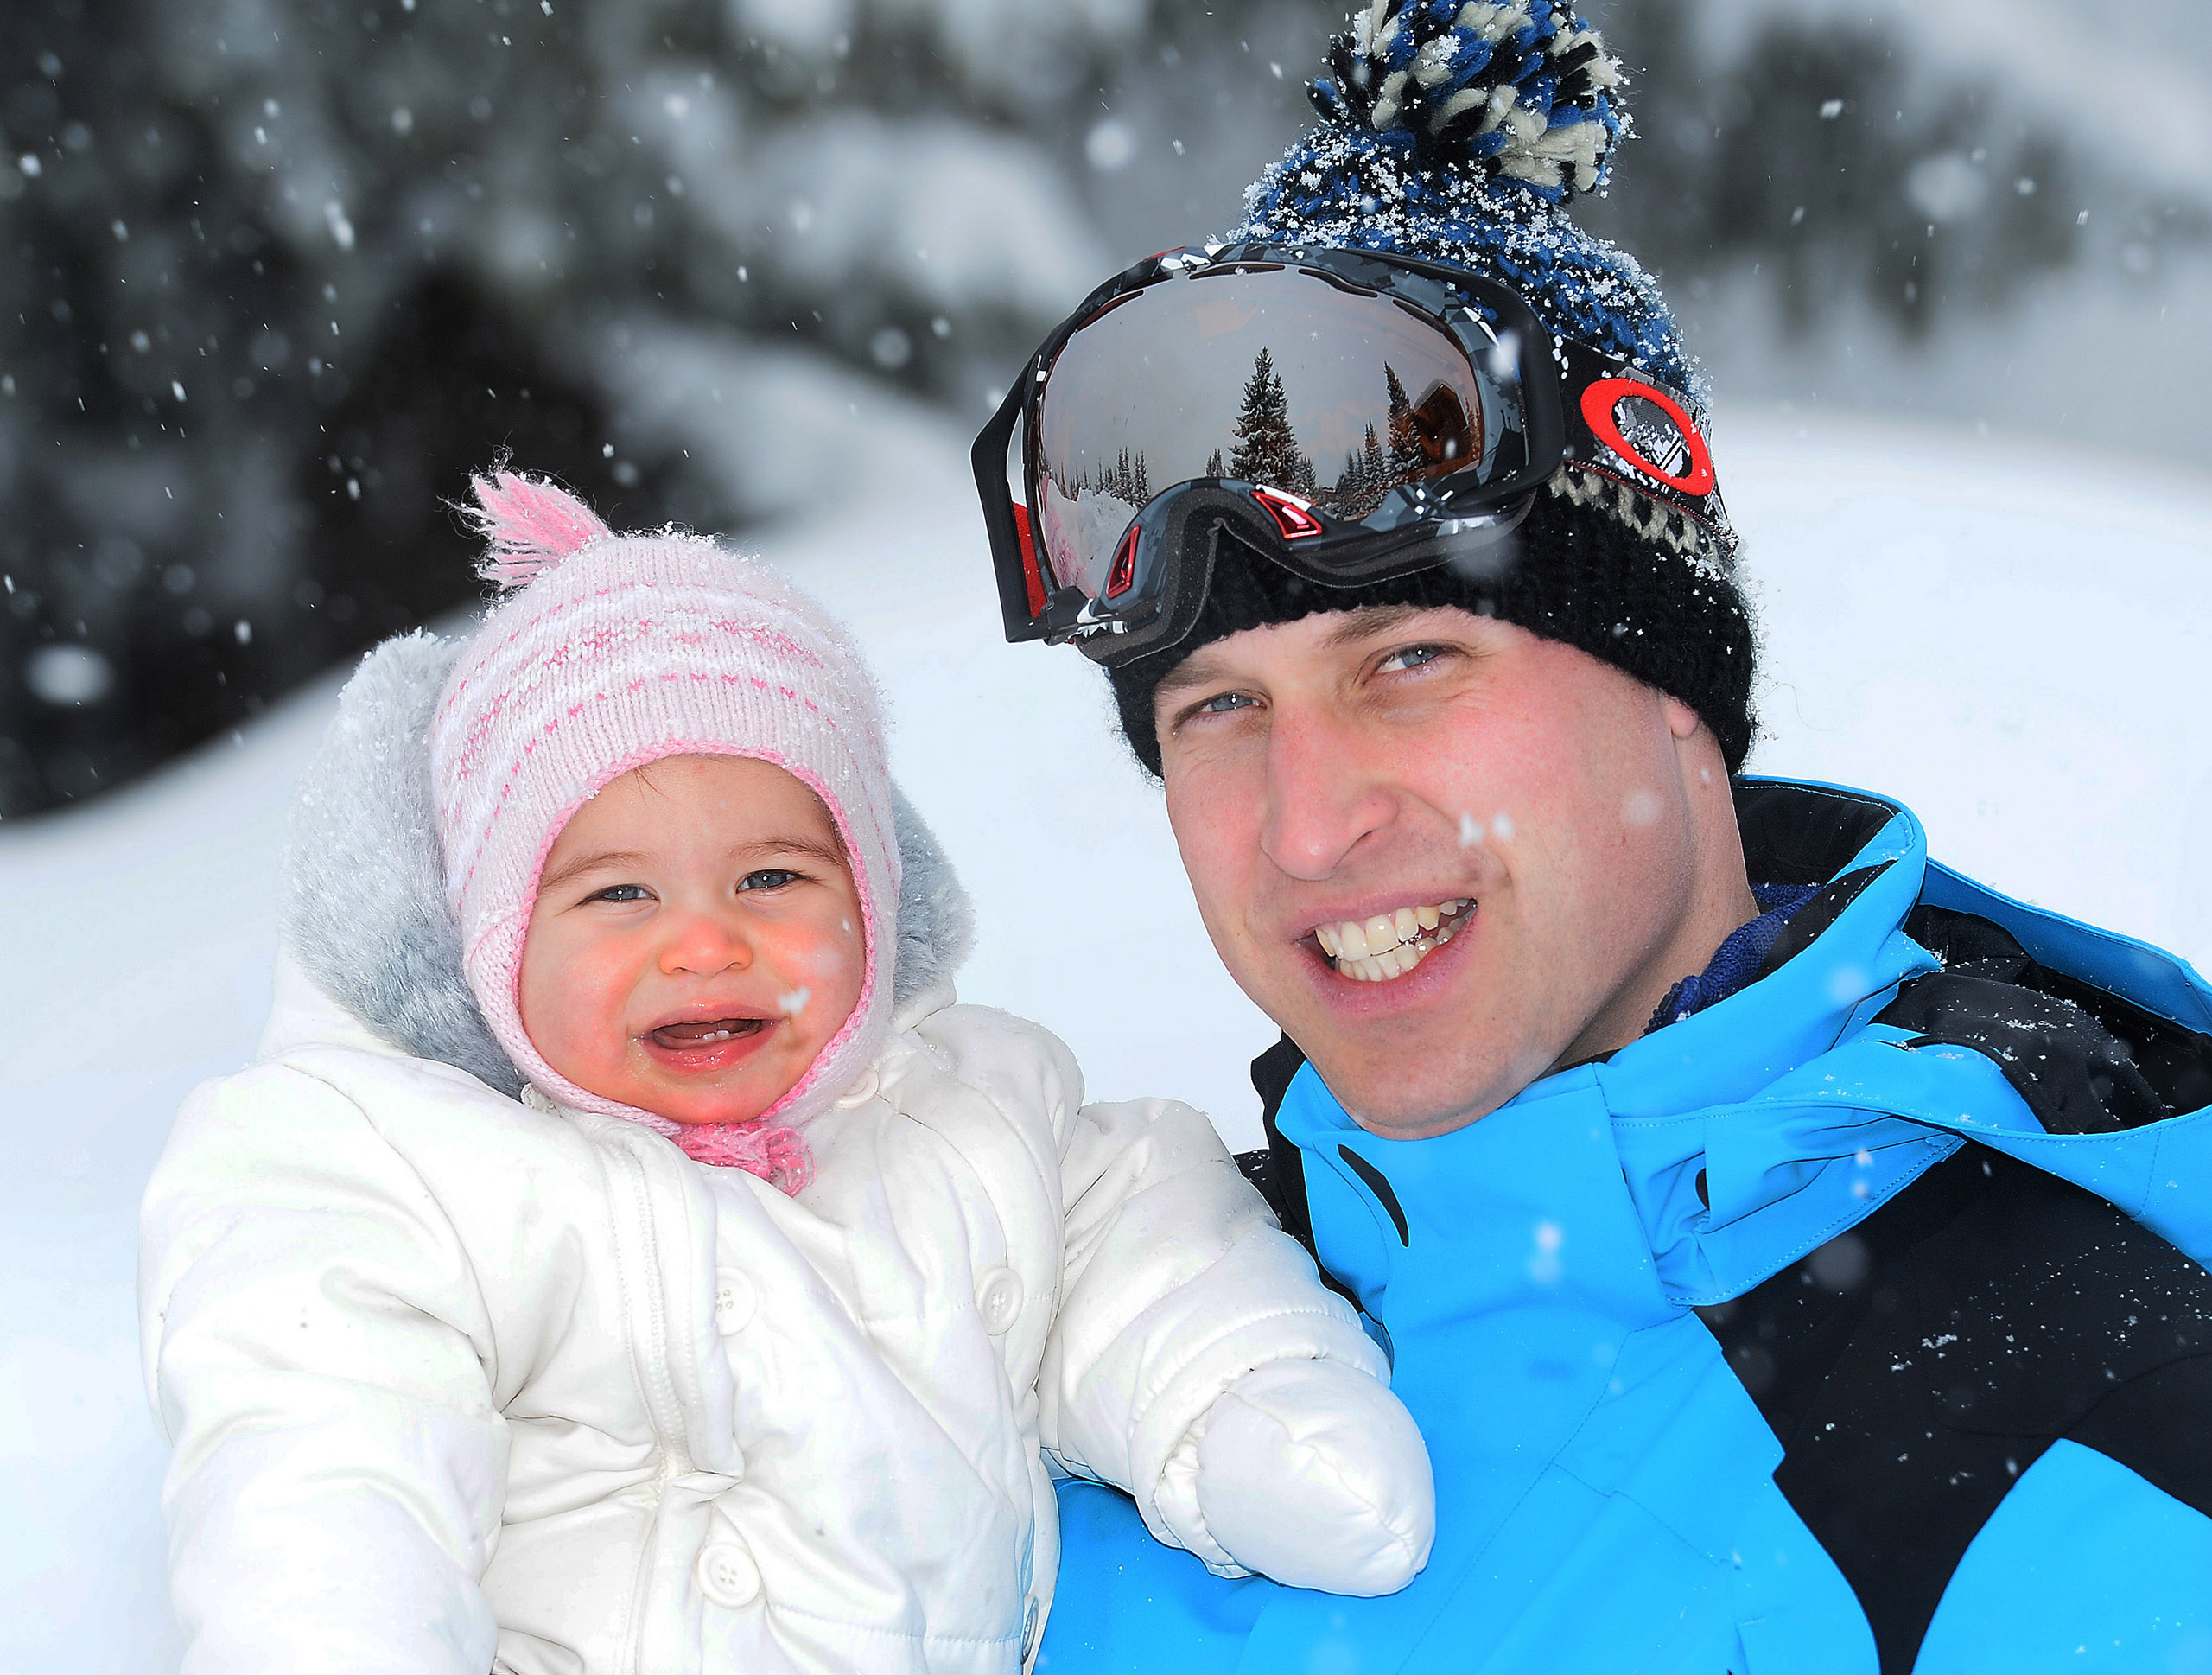 Prince William, Duke of Cambridge, and Princess Charlotte enjoy a short private skiing break in the French Alps on March 3, 2016.